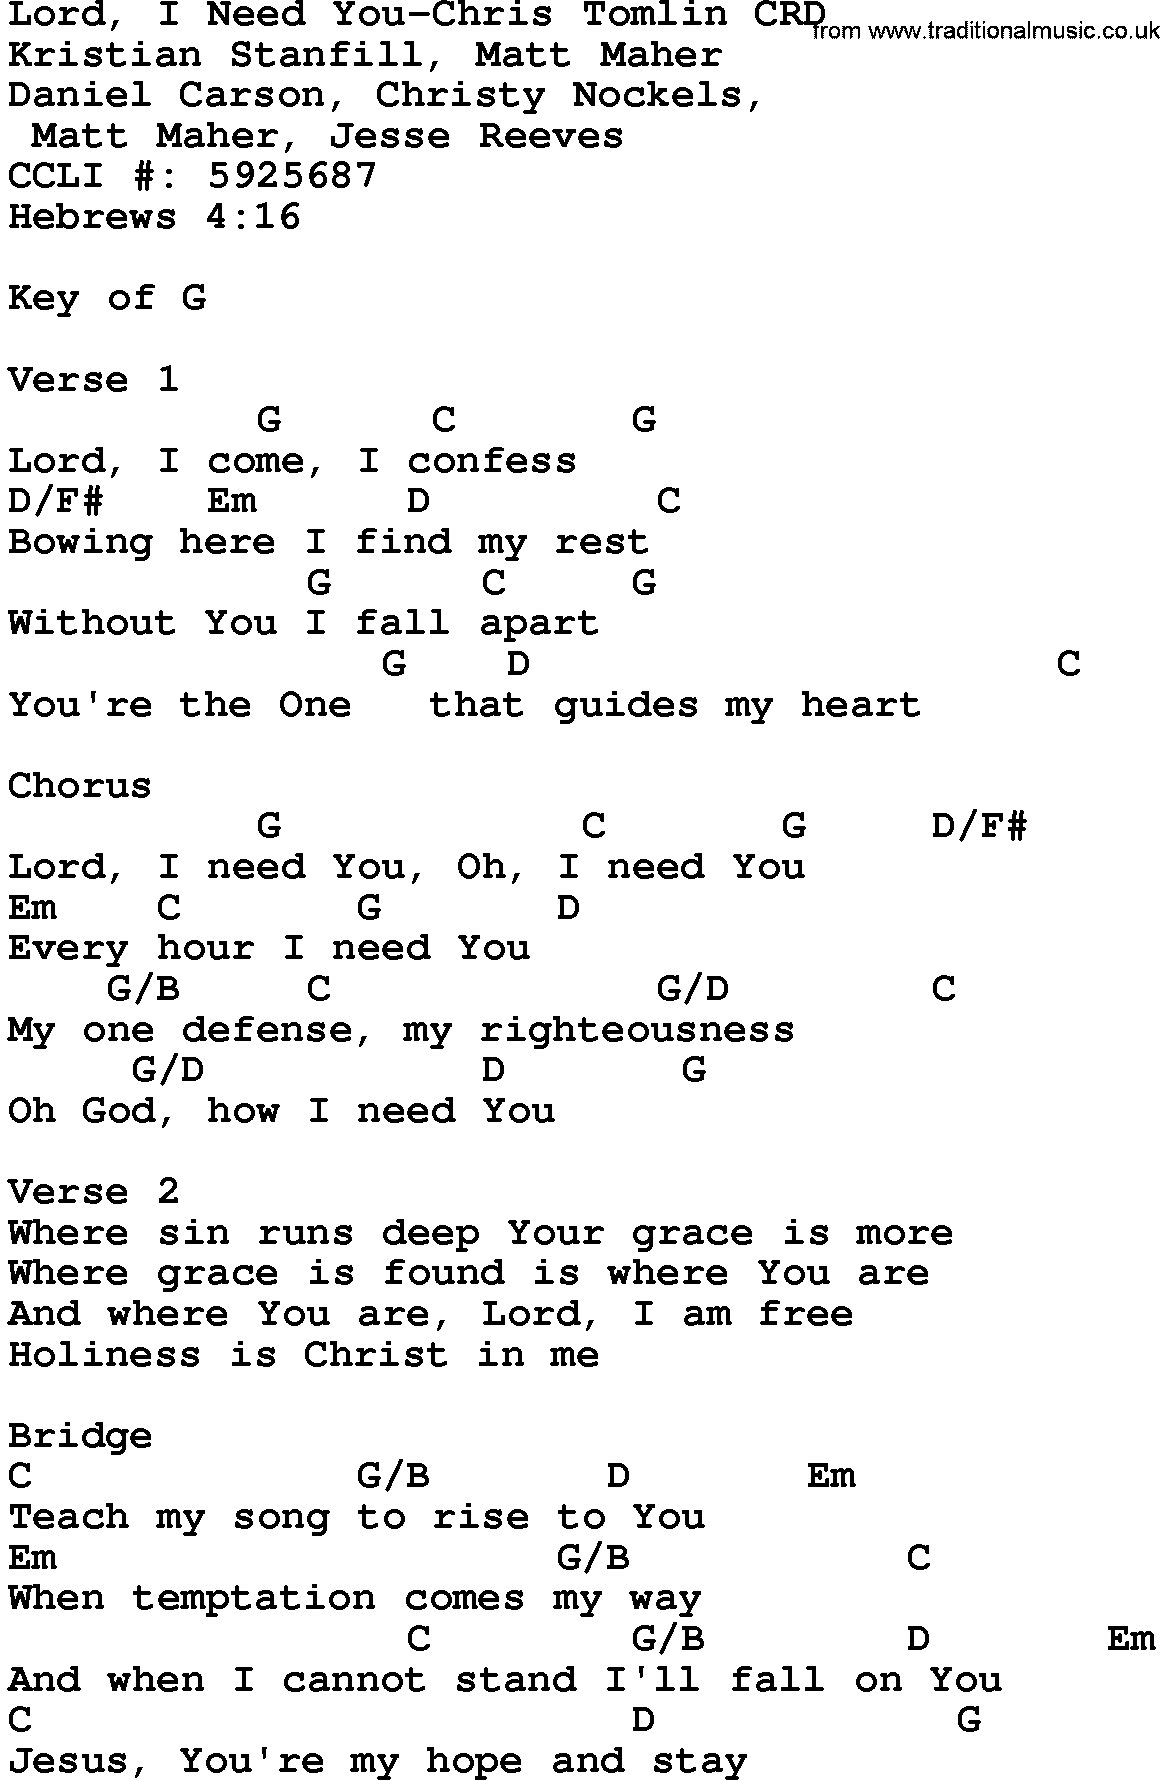 Gospel song lord i need you chris tomlin lyrics and chords gospel song lord i need you chris tomlin lyrics and chords hexwebz Image collections